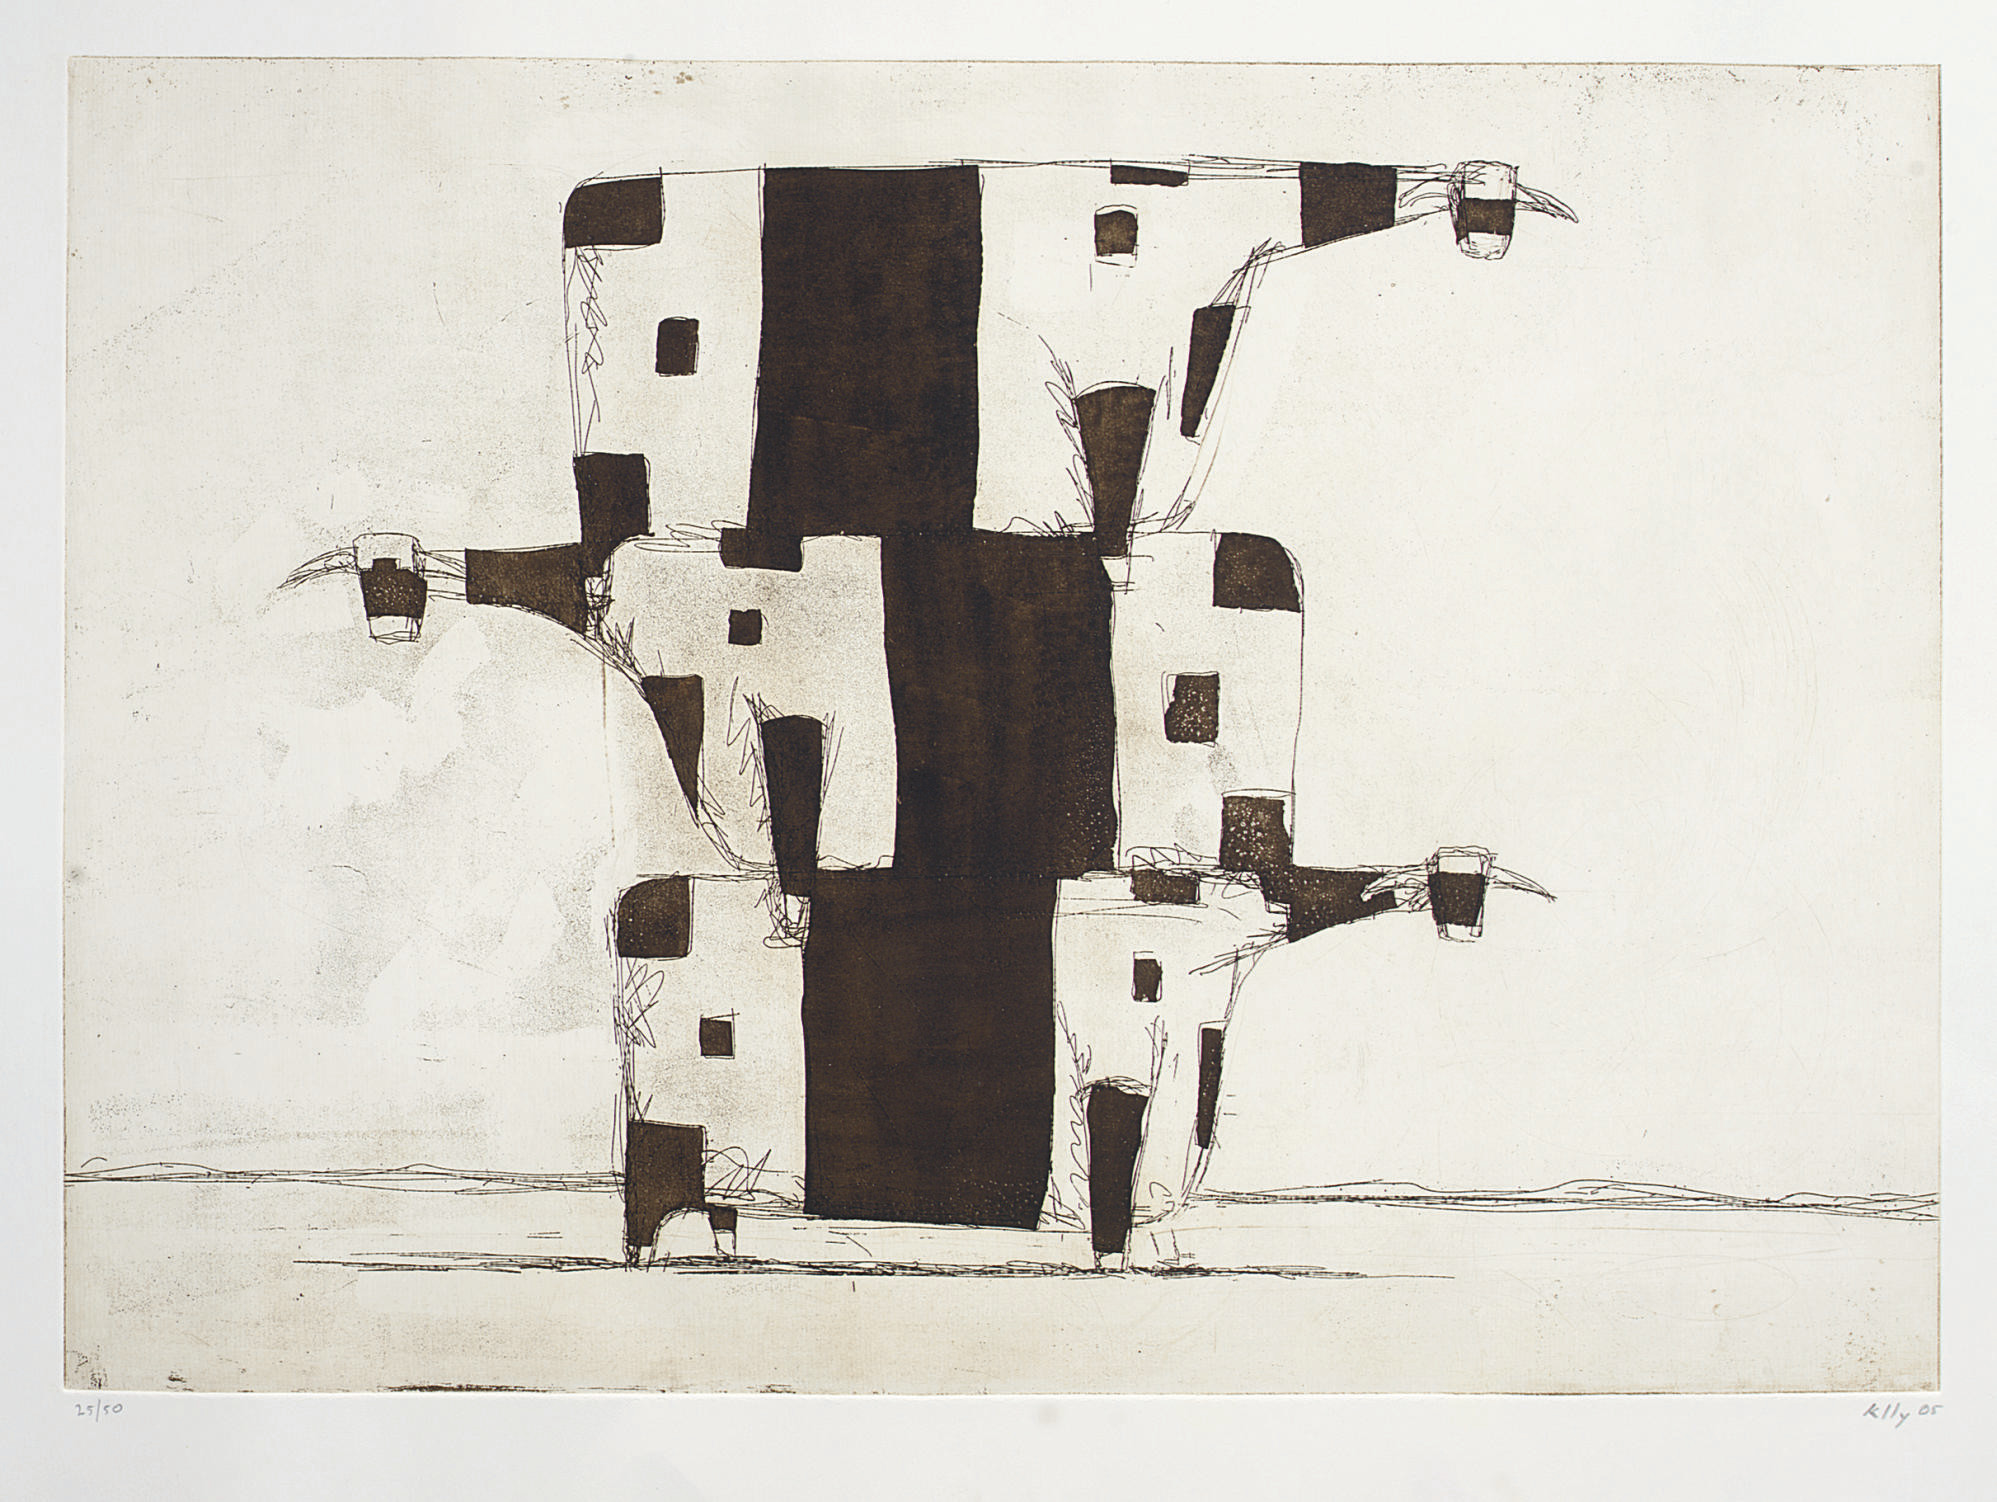 Untitled (Three cows in a pile)